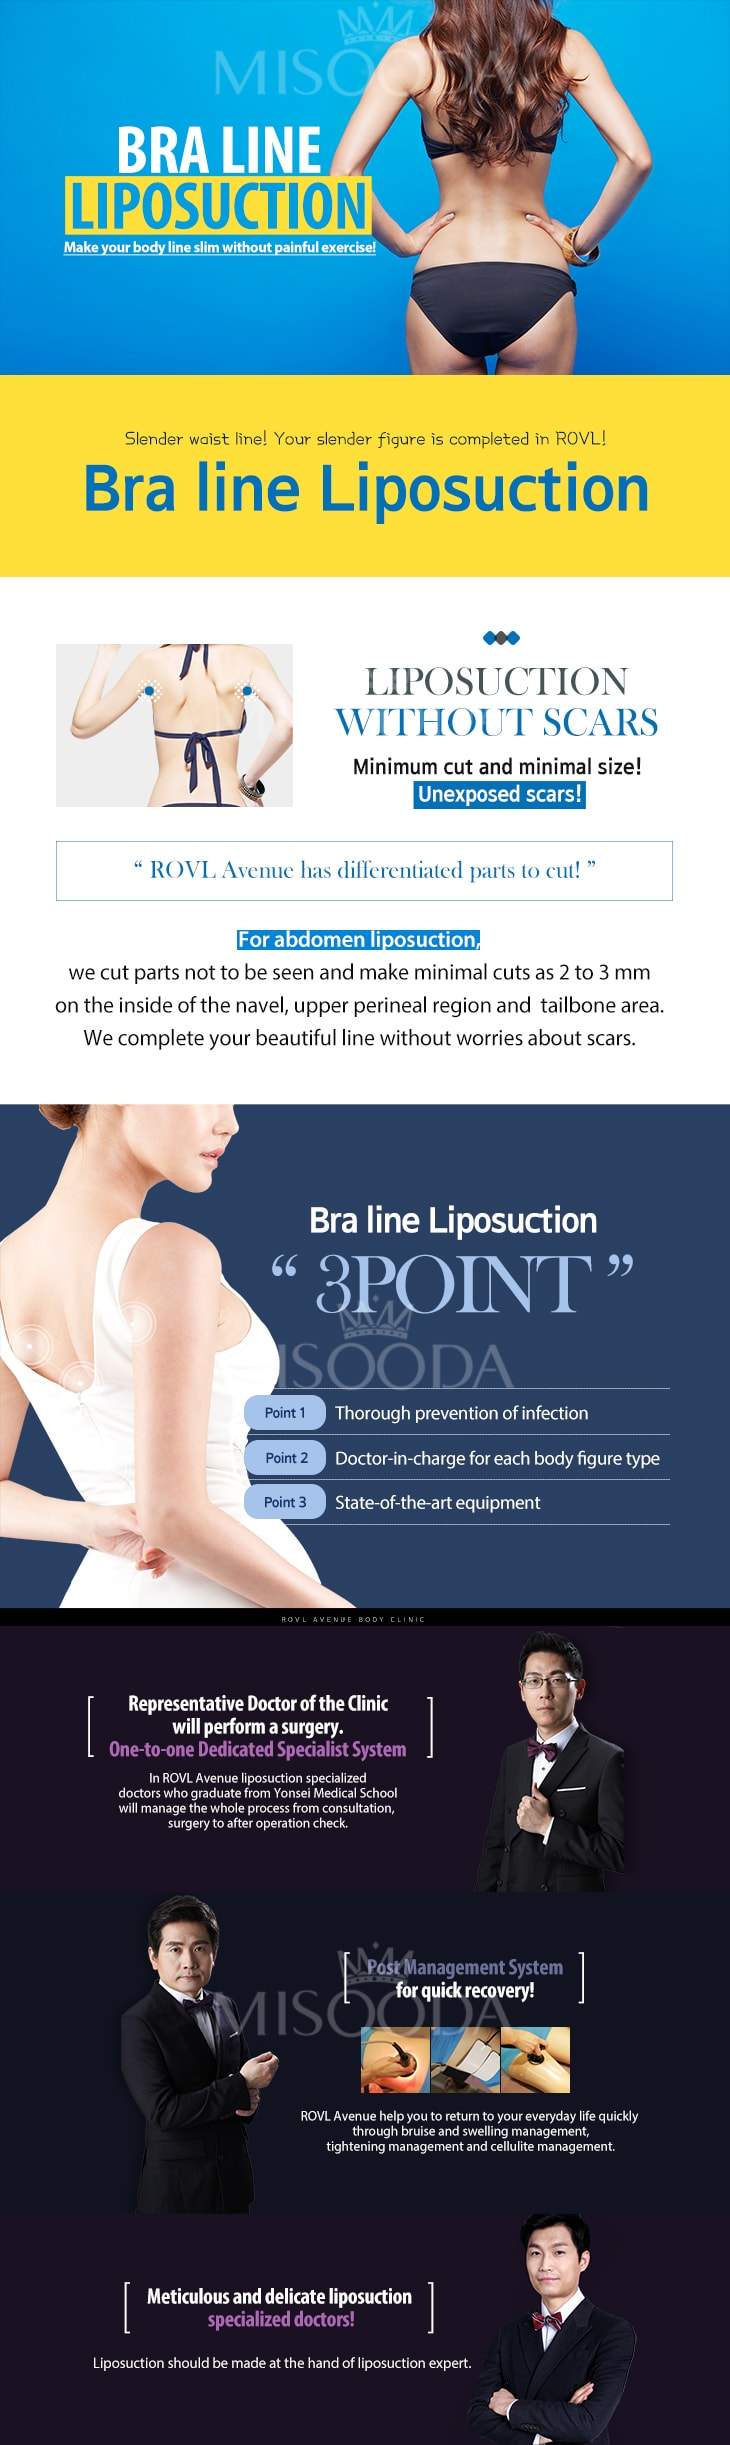 Bra Line Liposuction